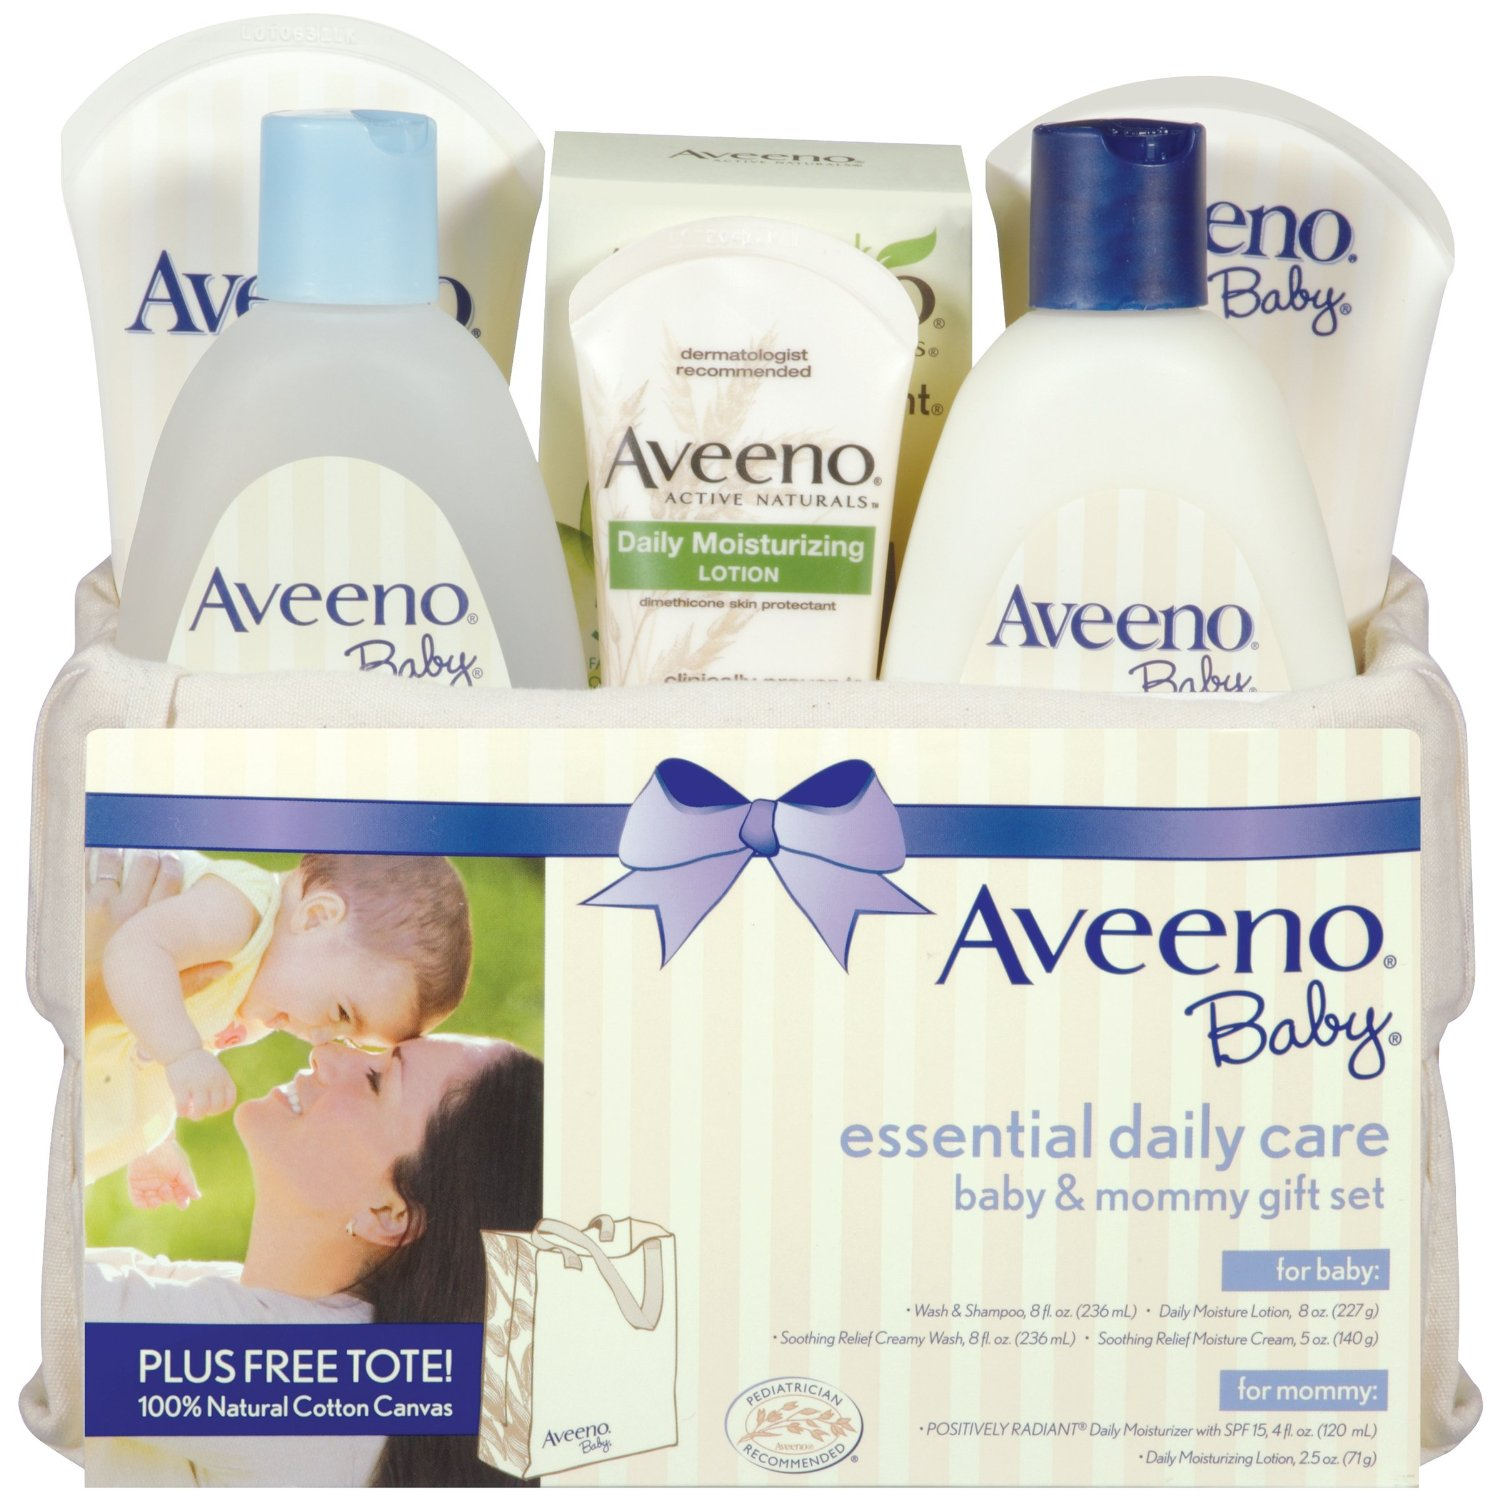 Aveeno Baby and Mother Gift Set